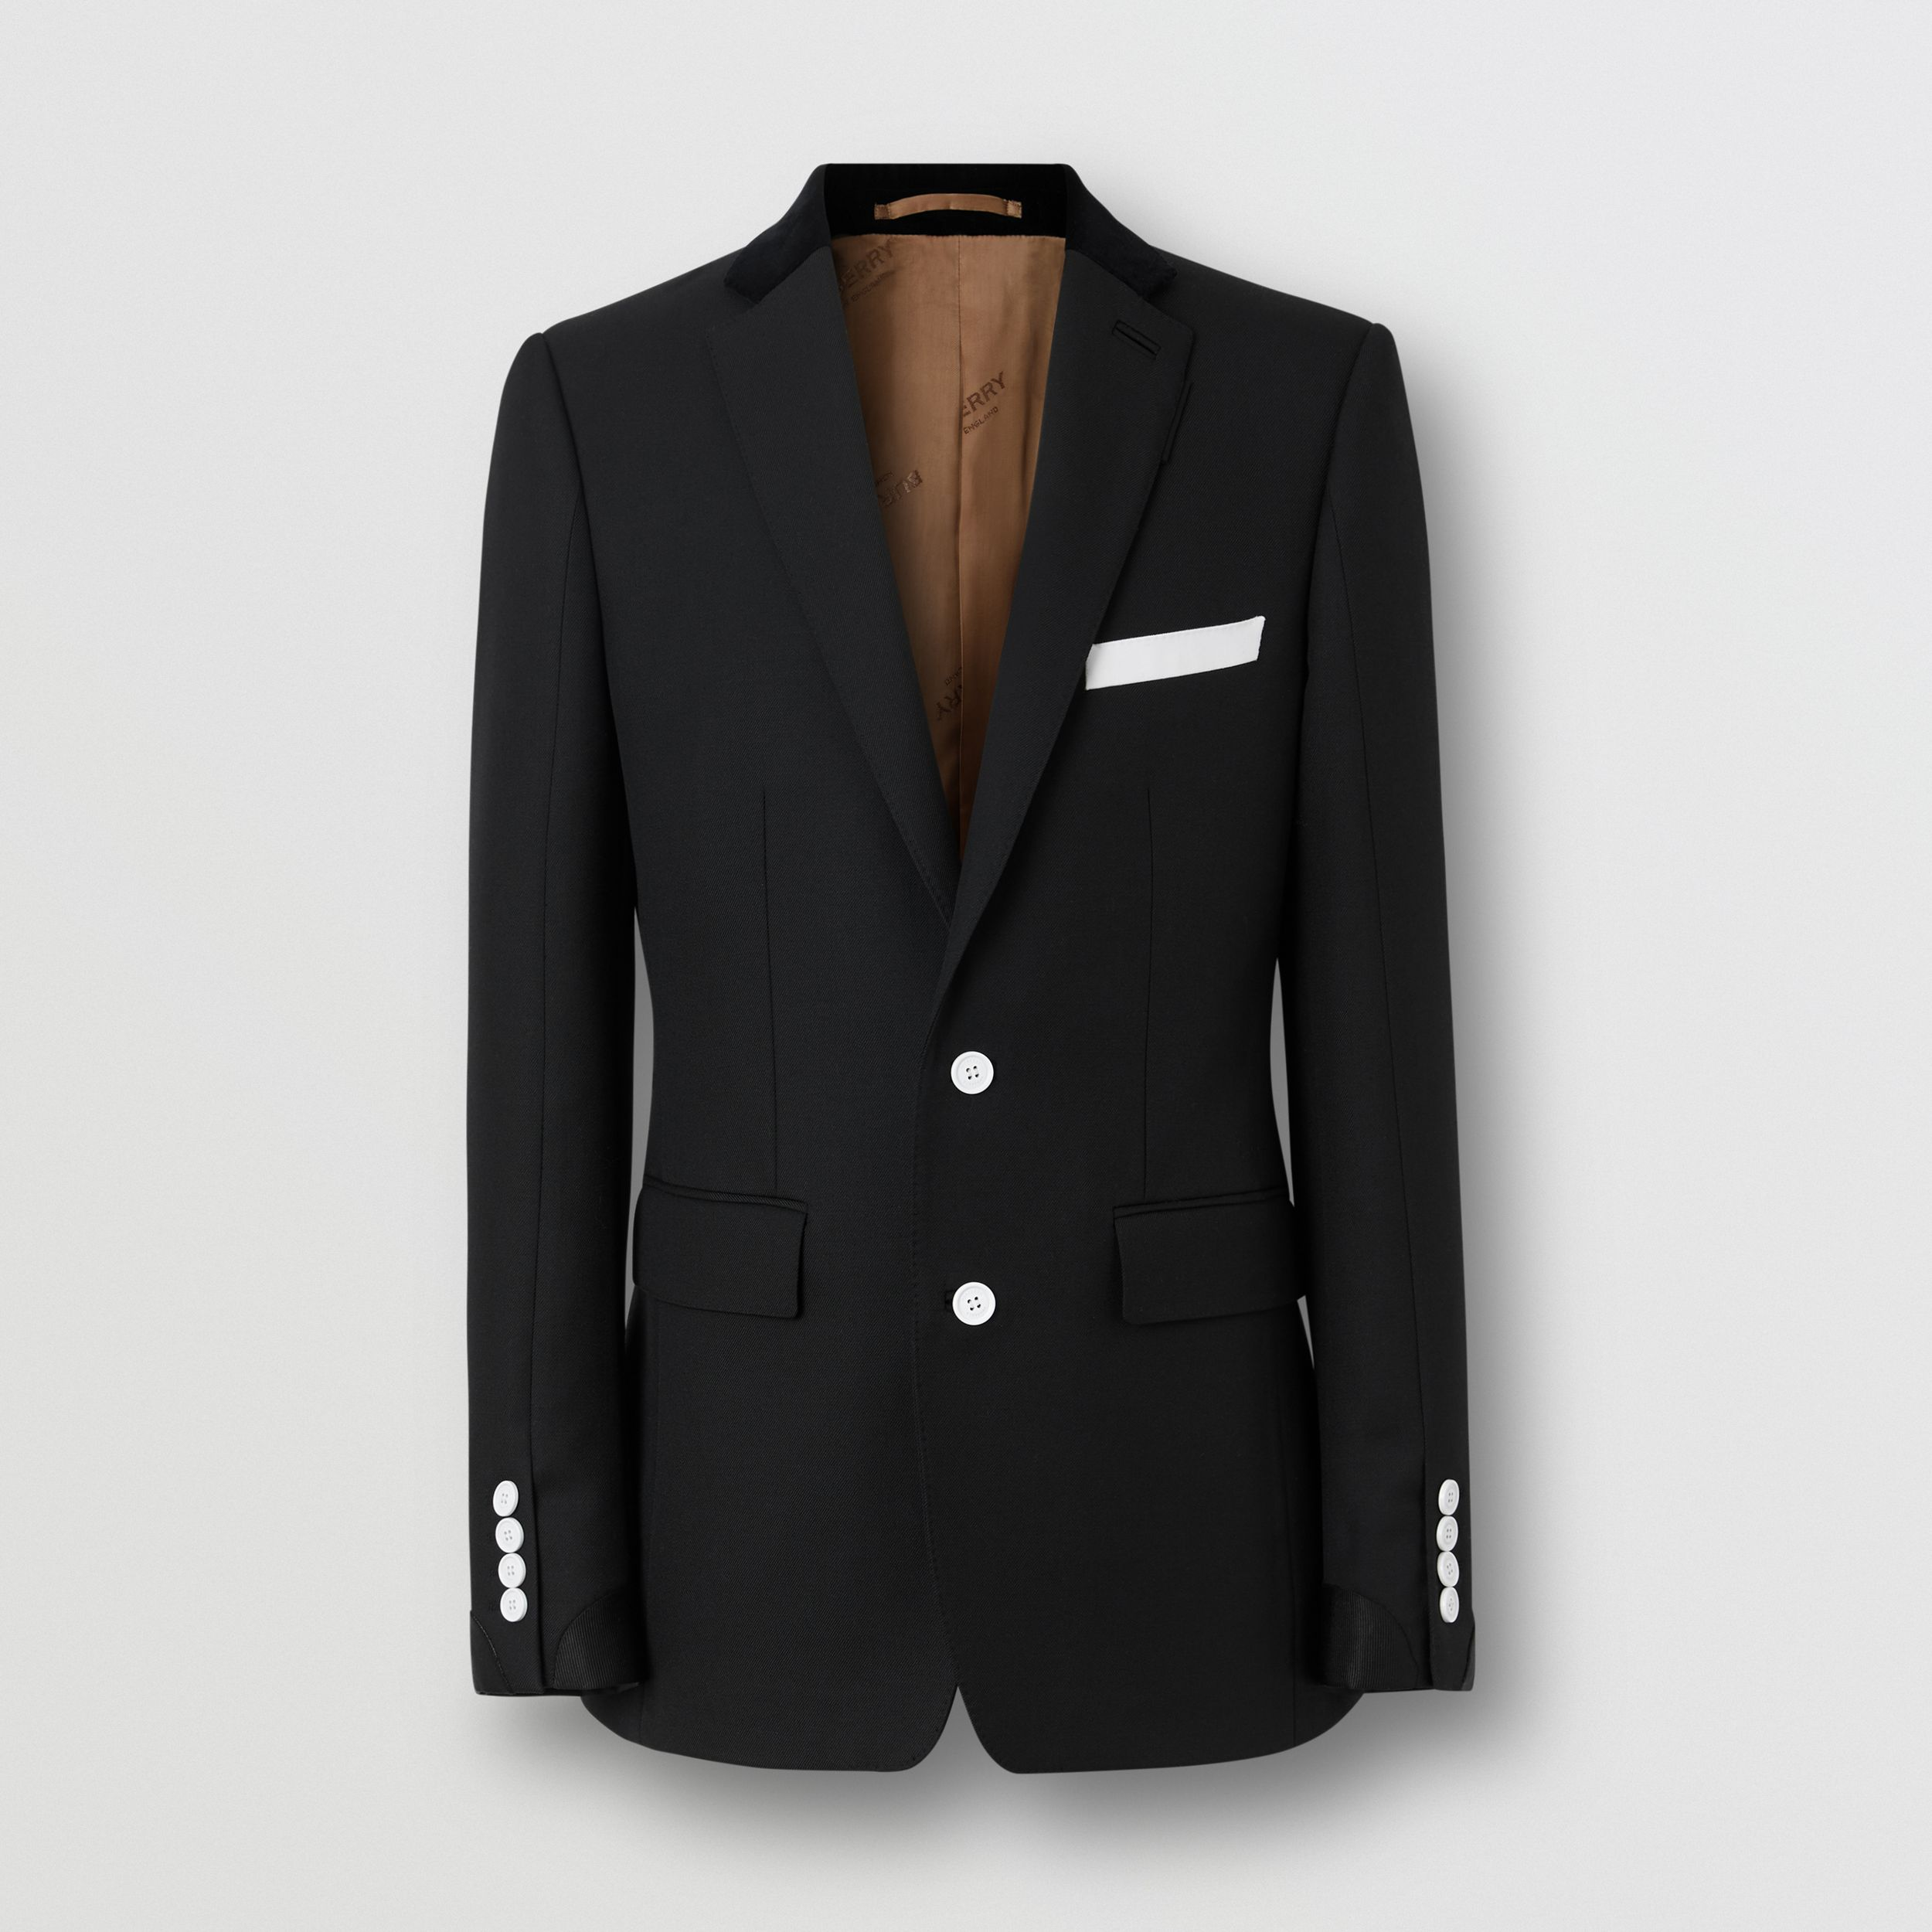 English Fit Velvet Collar Wool Tailored Jacket in Black - Men | Burberry - 4